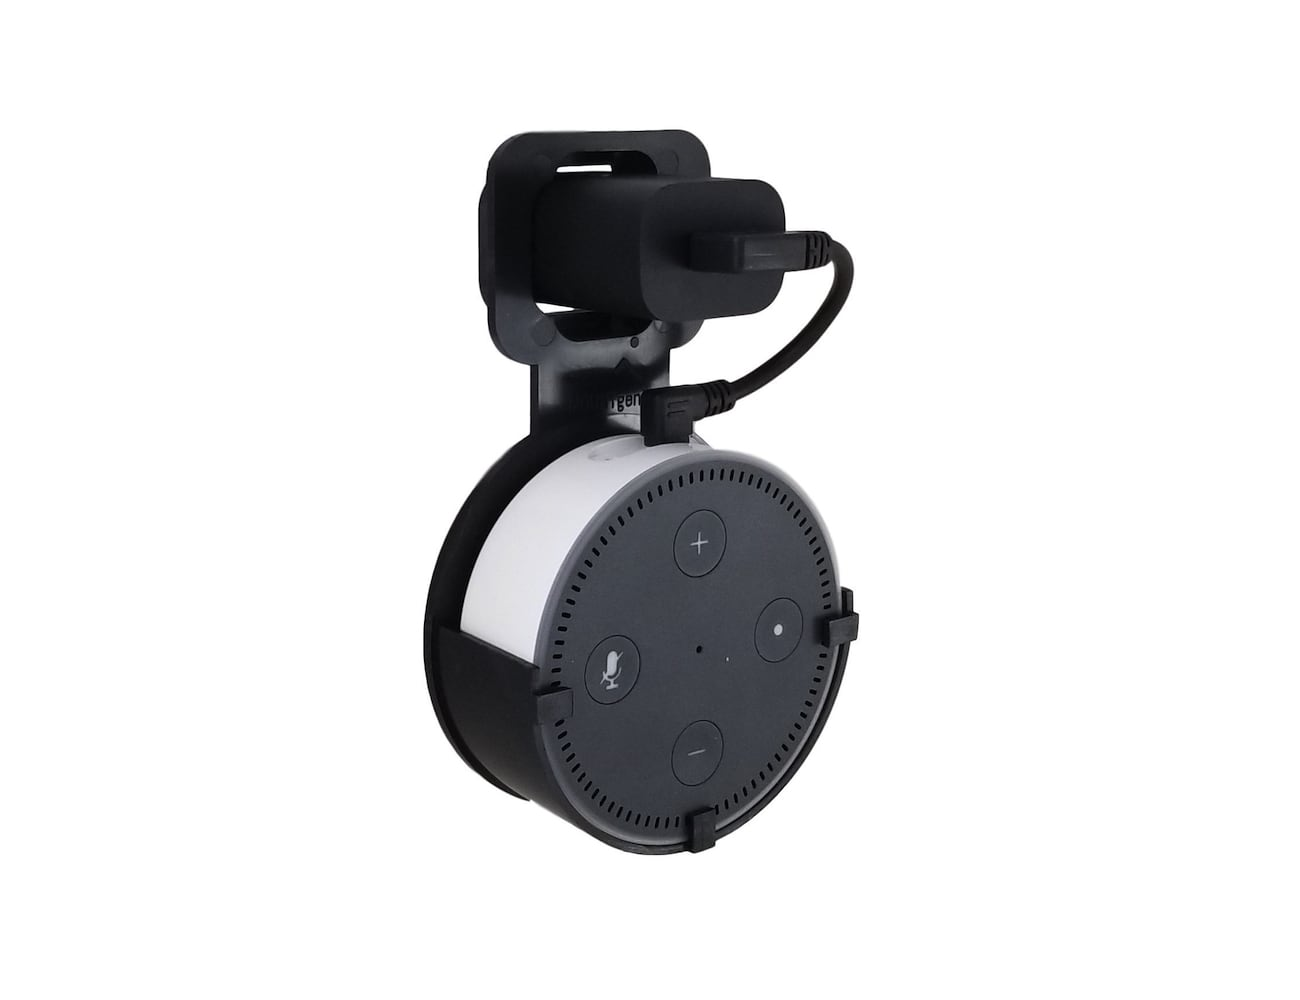 Mount Genie The Spot Outlet Wall Mount